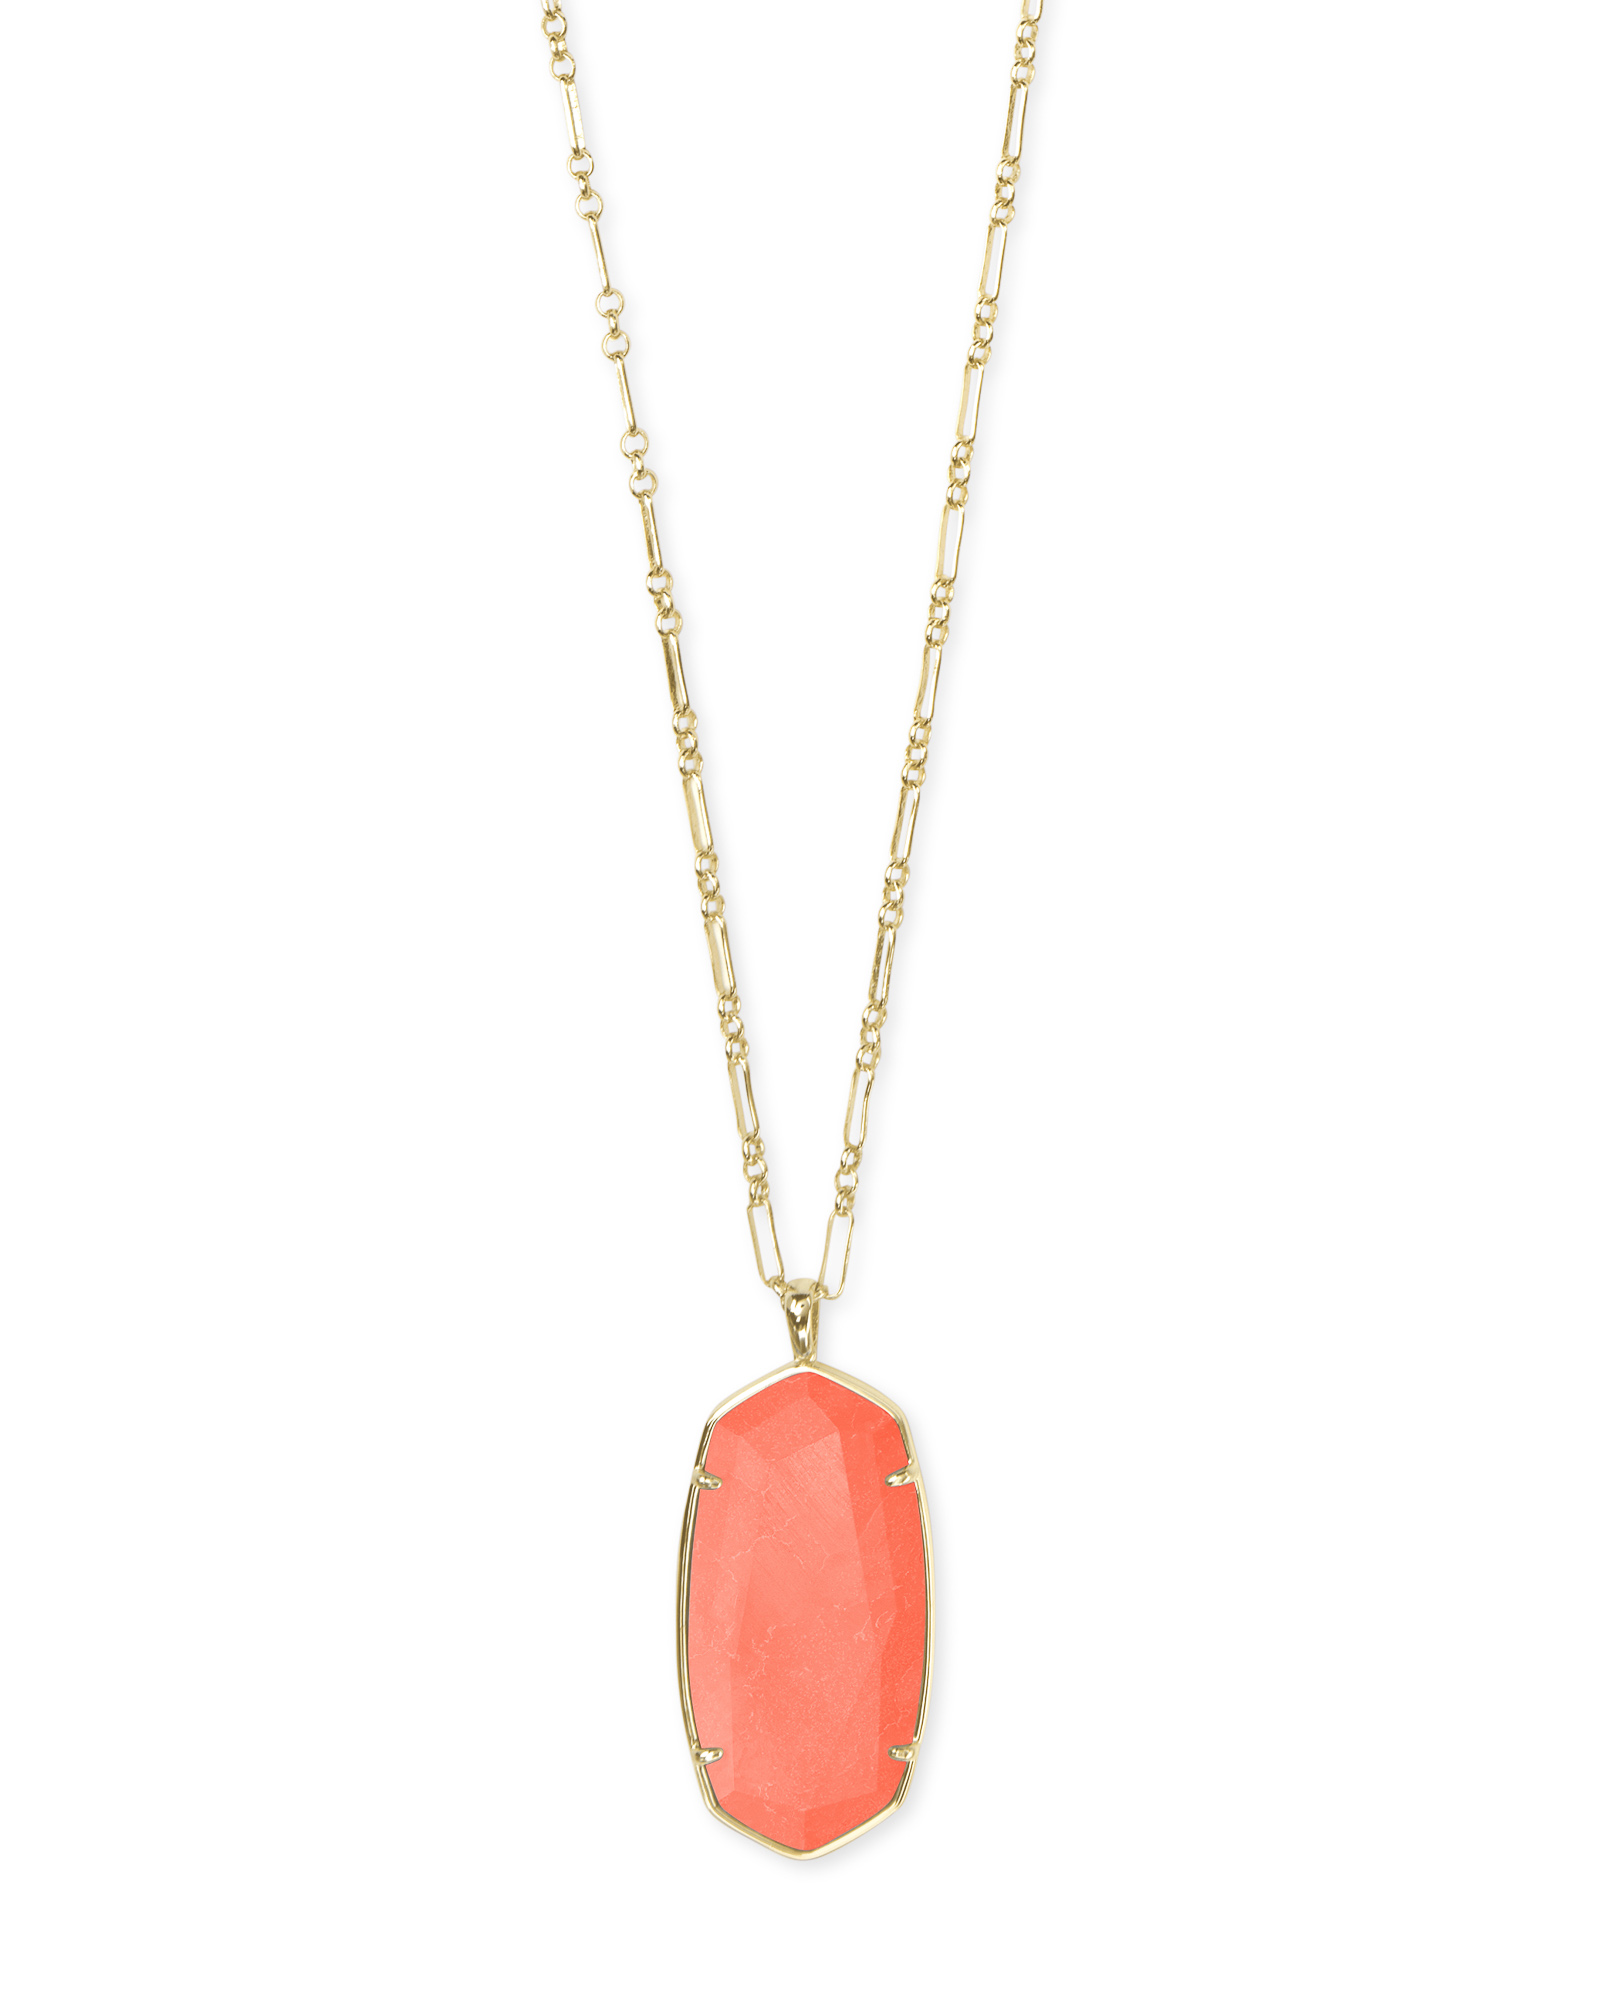 Faceted Reid Gold Long Pendant Necklace in Bright Coral Magnesite